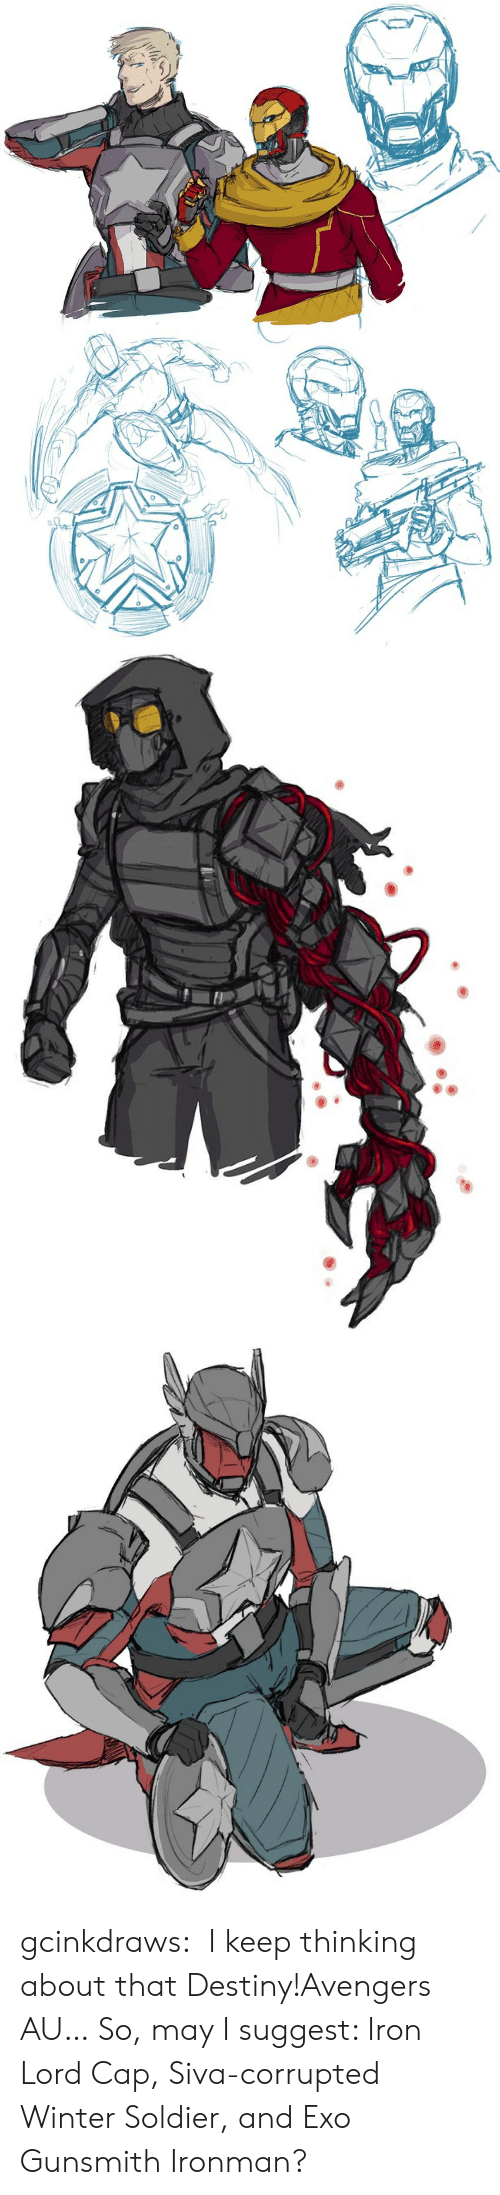 soldier: gcinkdraws:  I keep thinking about that Destiny!Avengers AU…So, may I suggest: Iron Lord Cap, Siva-corrupted Winter Soldier, and Exo Gunsmith Ironman?